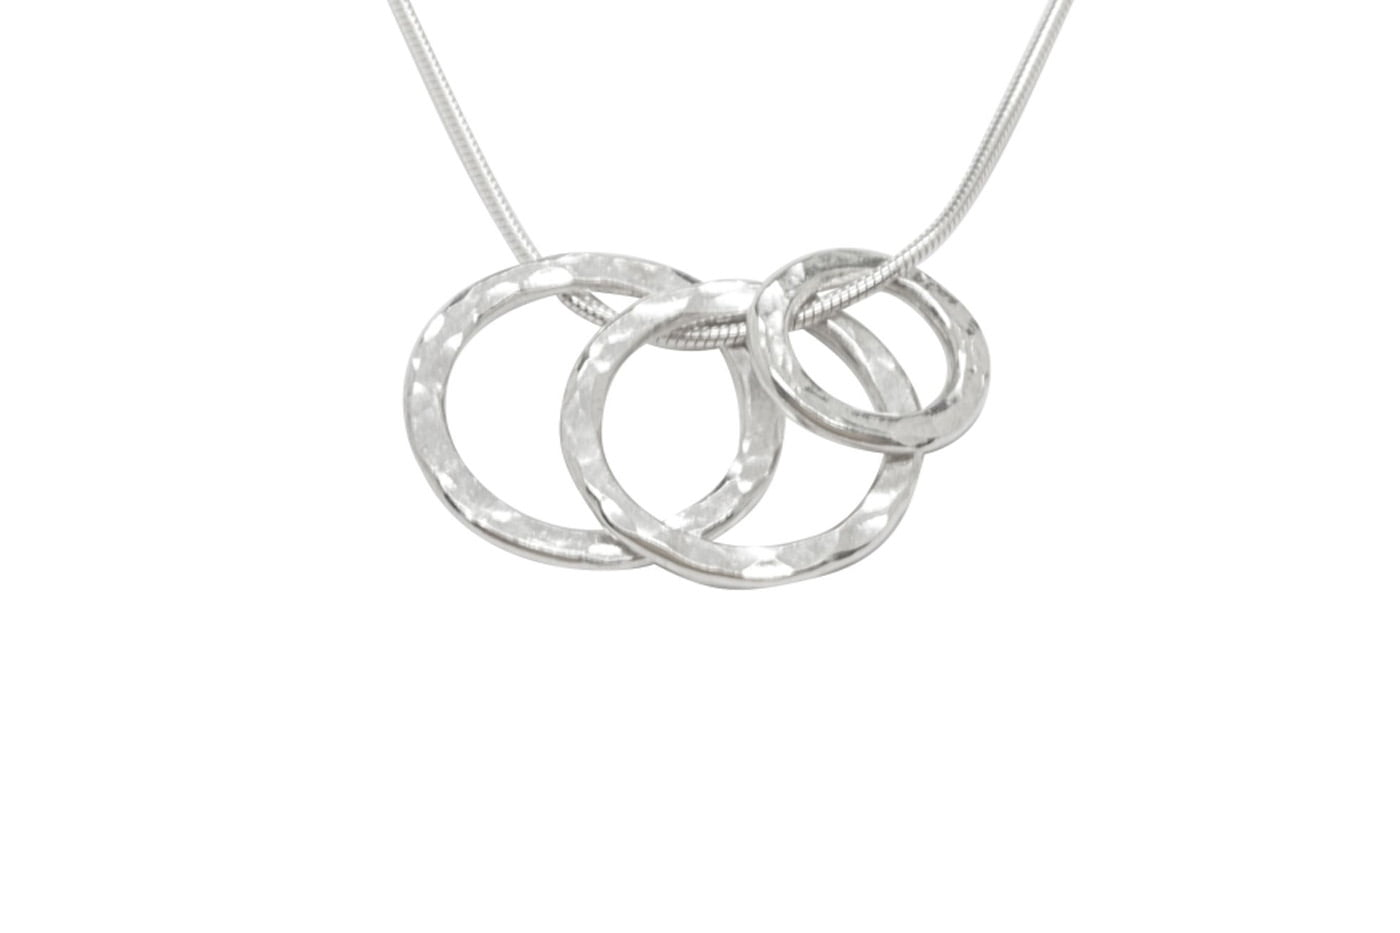 Review & Giveaway: Nude Jewellery Silver Necklace